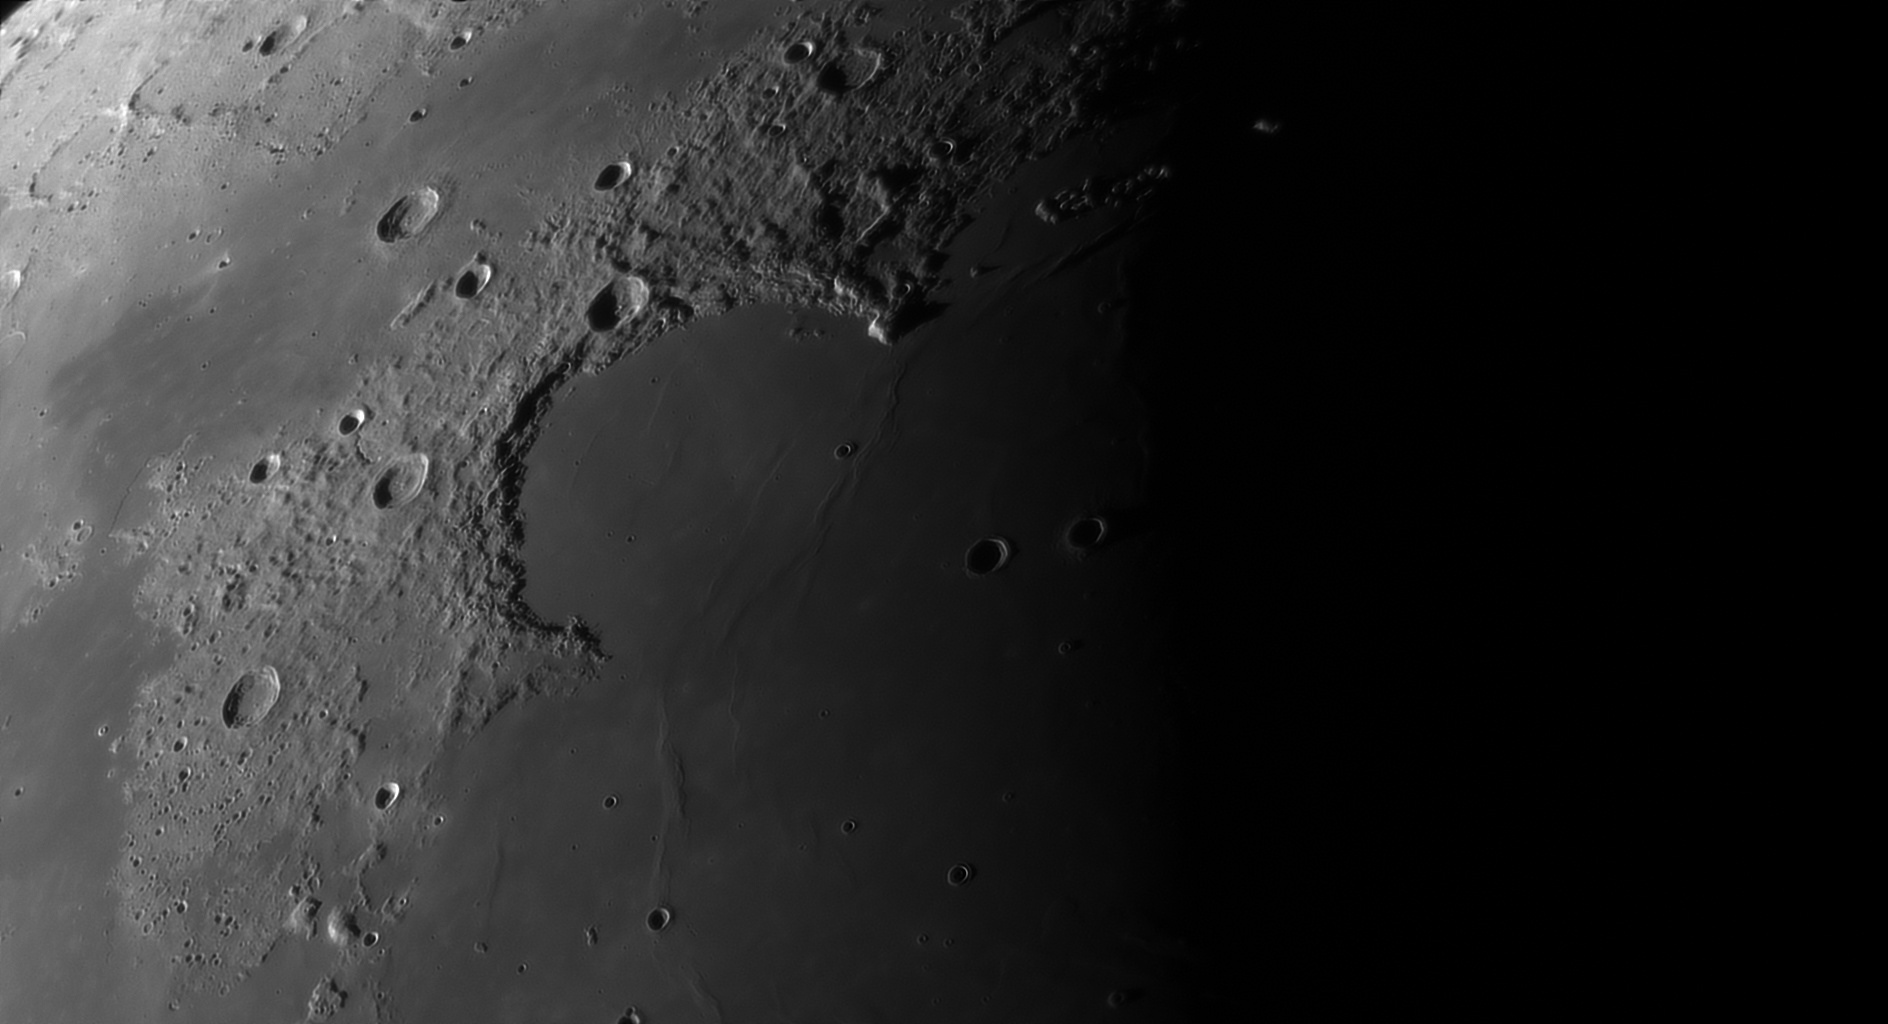 5d97a62bd8286_Moon_055632_230919_ZWOASI290MM_Rouge_23A_AS_P40_lapl4_ap260.jpg.ddd3f9c7e089638b649625fbc0123fb9.jpg